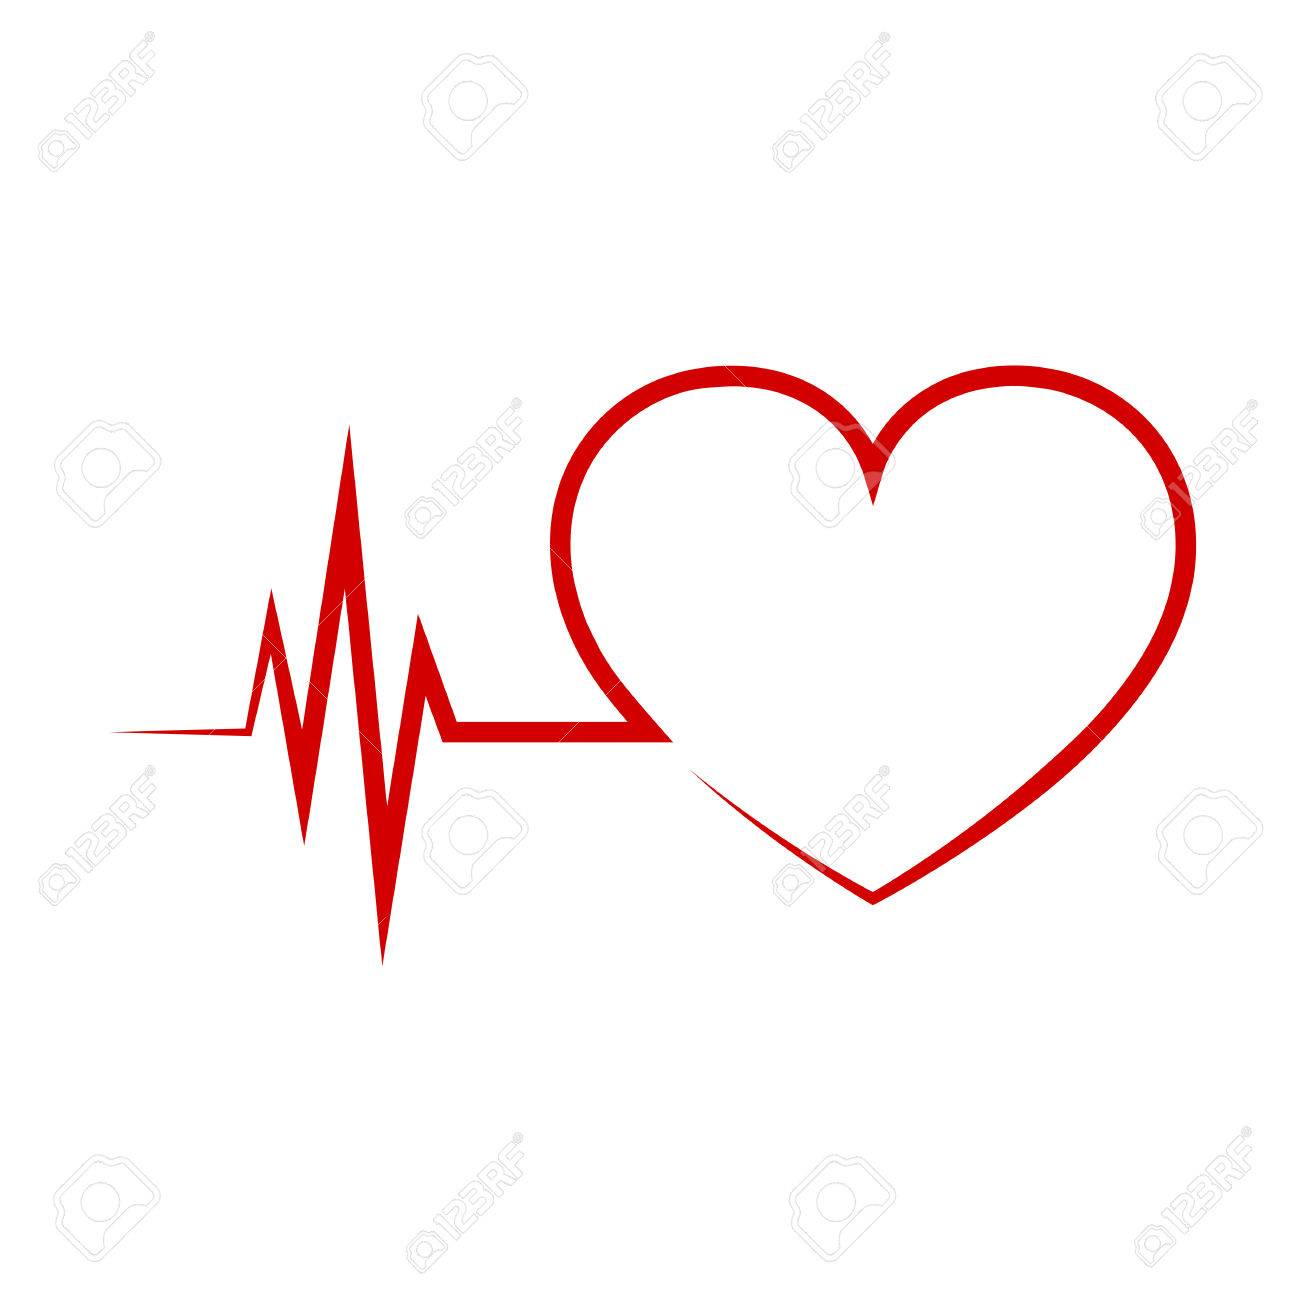 Red heart icon with sign heartbeat  Vector illustration  Heart